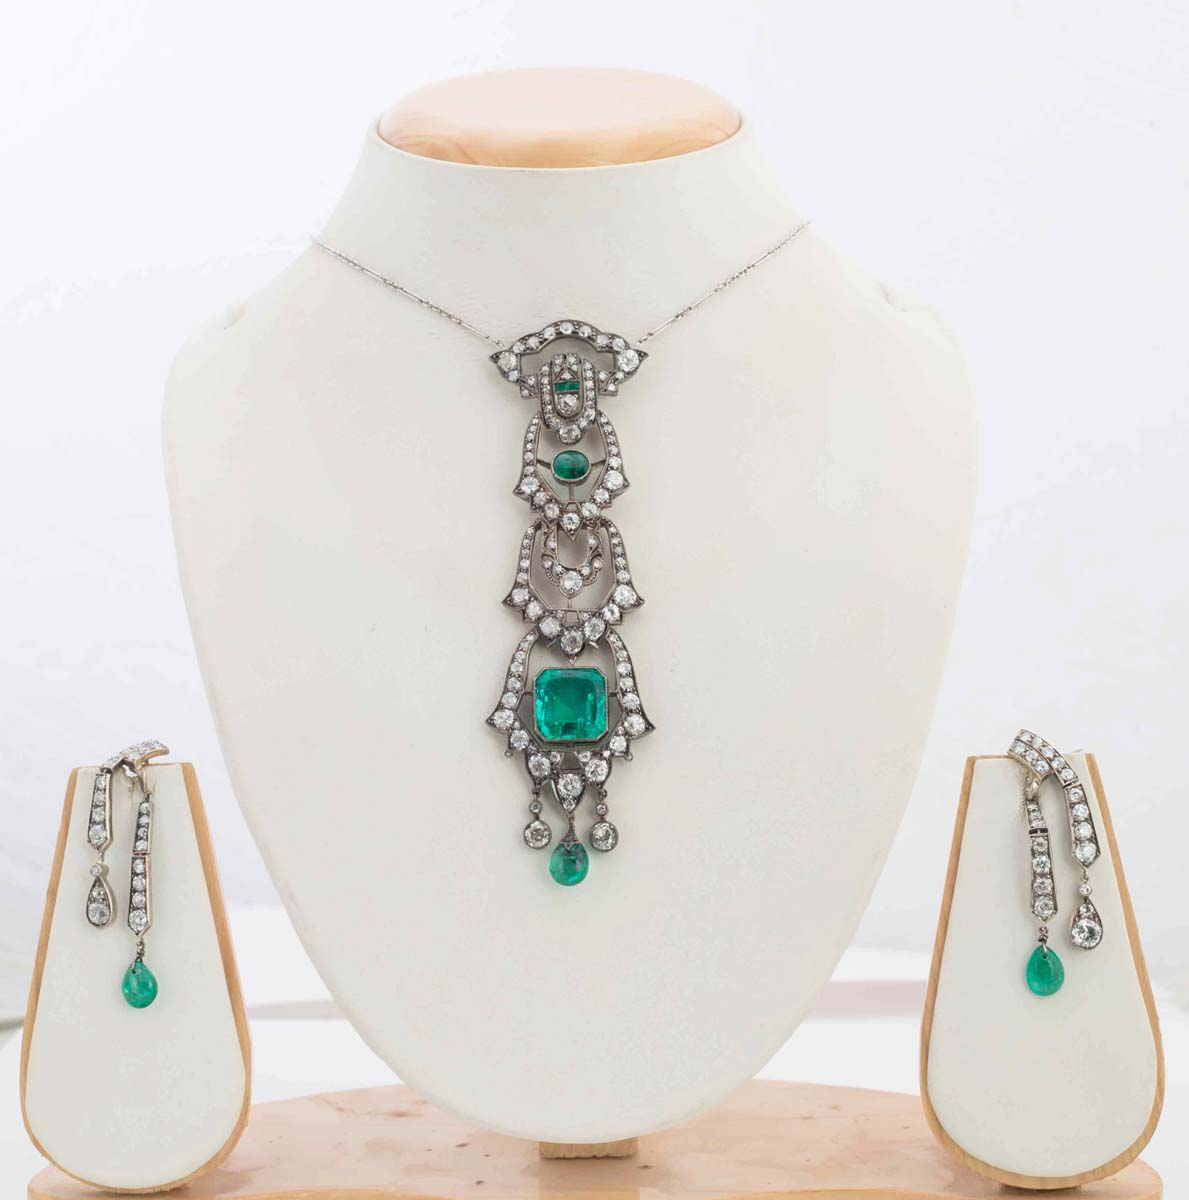 Diamond and Emerald Necklace and Earrings